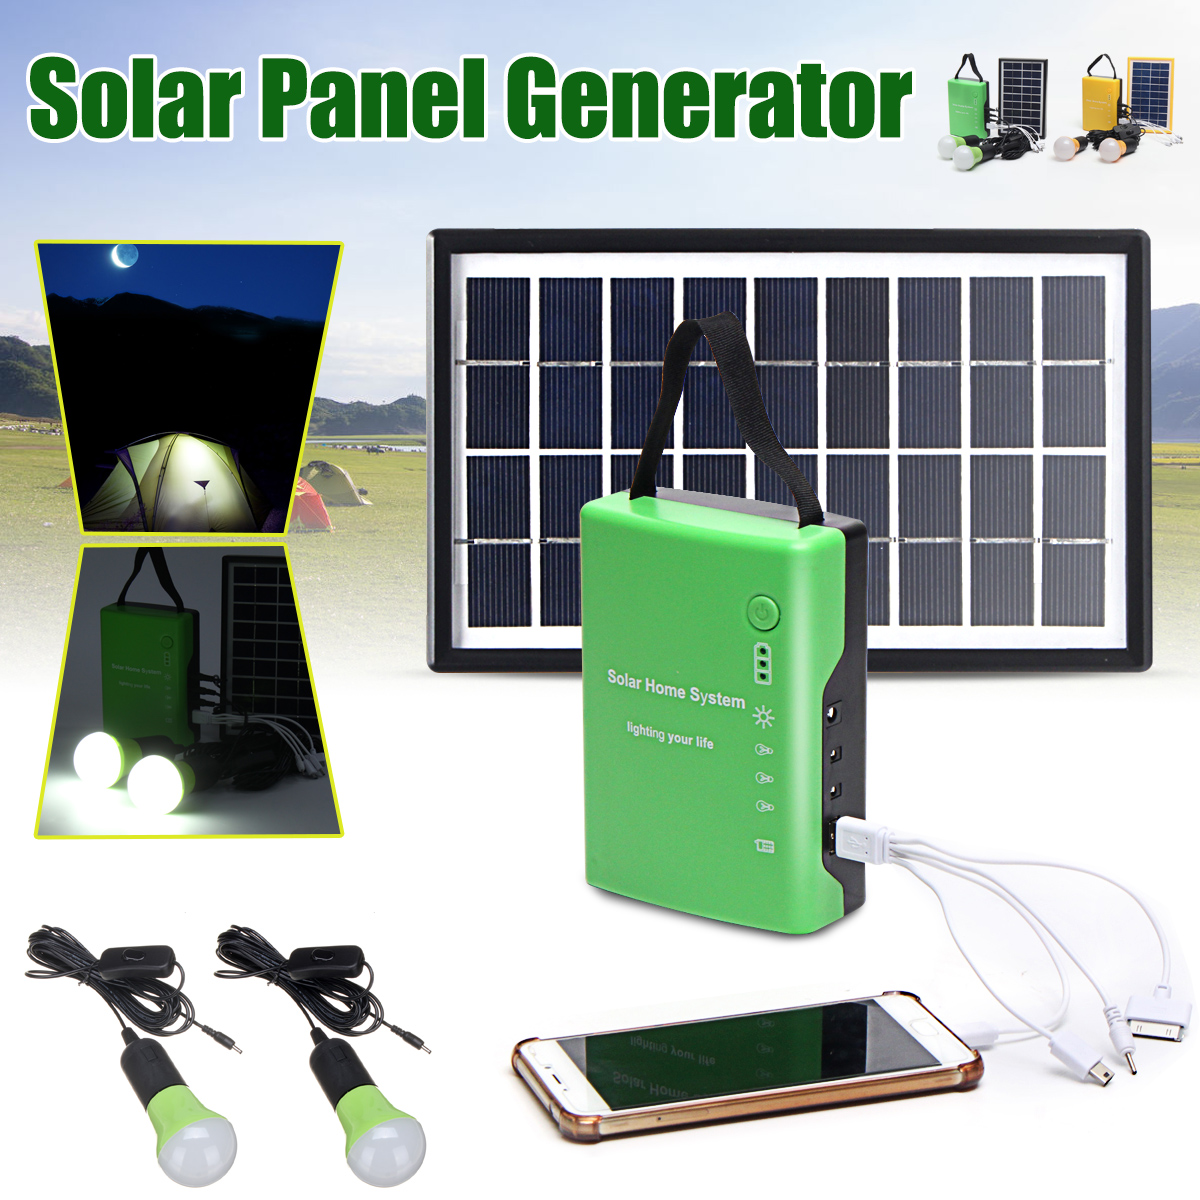 Portable Home Outdoor Solar Panel Power Generator USB Cable Charge Emergency LED Light System 4.5Ah / 6V batteries Energy LED portable home outdoor solar panels charging generator power generation system 6v 3w lead acid batteries energy usb charger